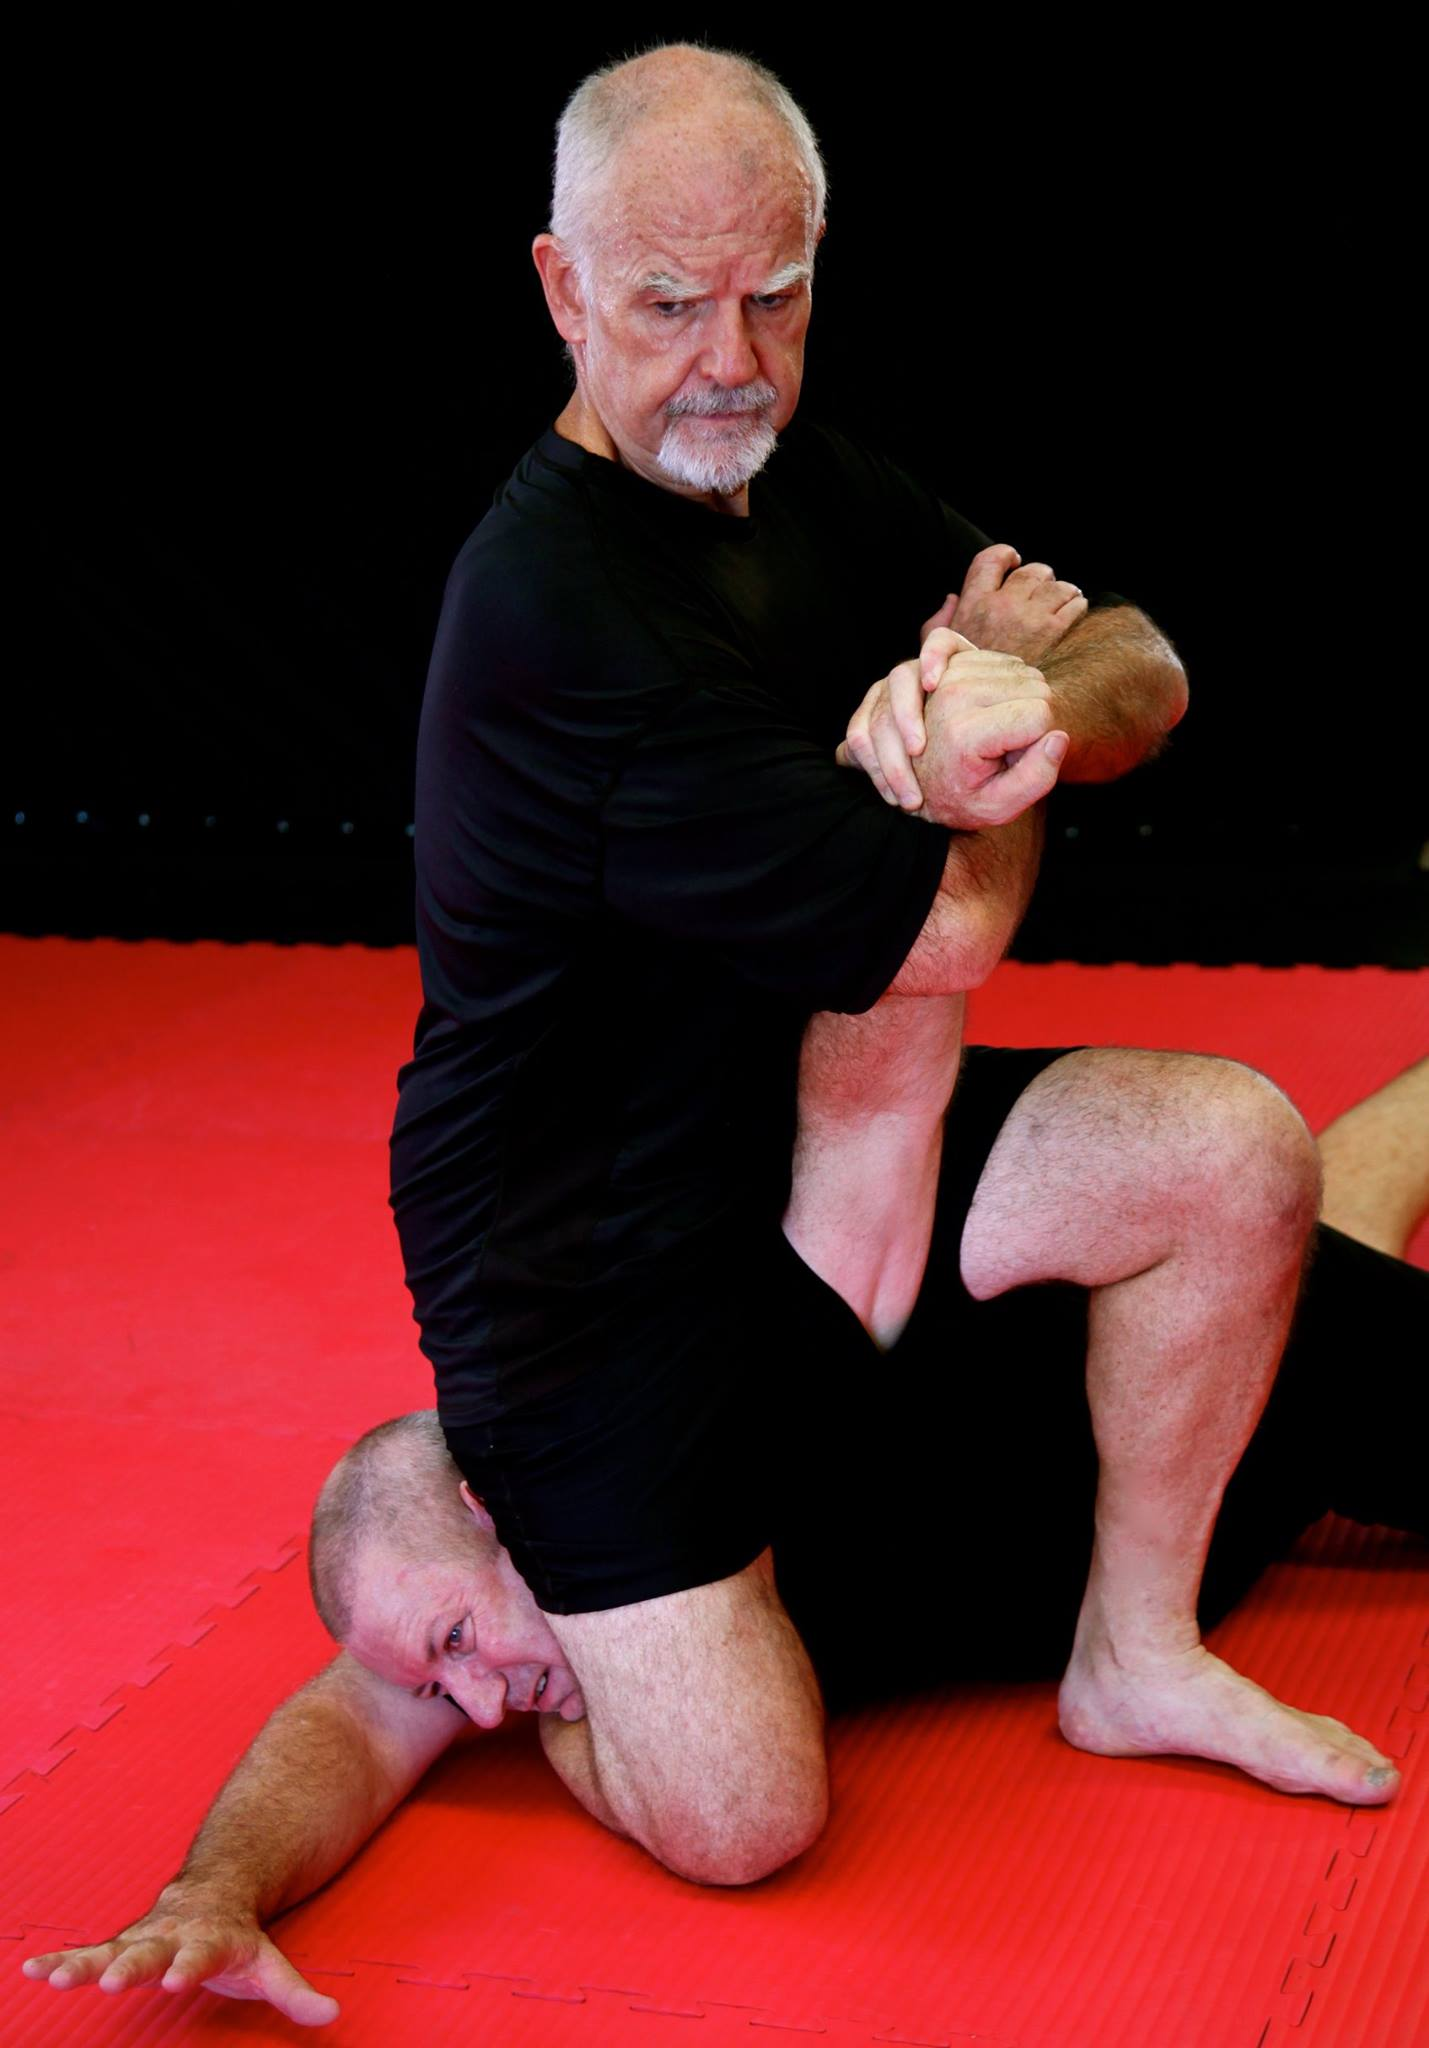 "HANSHI MCCARTHY - Hanshi Patrick McCarthy is a 5th generation master-level instructor of Uchinadi. He is Japan-accredited instructor [9th Dan/範士9段] , founder and director of the International Ryukyu Karate Research Society/琉球唐手術国際研究会 est.1989 in Japan.Hanshi McCarthy has walked in the footsteps of the masters who pioneered the modern karate tradition, following Kinjo Hiroshi, Hanashiro Chomo, Itosu Ankoh, and, Matsumura Sokon. He received his credentials directly from the Dai Nippon Butokukai, as they were bestowed upon Funakoshi Gichin, Miyagi Chojun, Mabuni Kenwa, Ohtsuka Hironori, Konishi Yasuhiro, Sakagami Ryusho, and Nagamine Shoshin.In the 80's Hanshi McCarthy relocated to Japan, and became widely recognized for his field studies and historical-based writings. His groundbreaking research, several books, includes the best-selling publication ""The Bubishi"".In 1995 Hanshi McCarthy was recruited by the Australian government to established the world's first University-level undergraduate Diploma of Martial Arts Instruction program.Today, when not overseeing the day-to-day activities of the IRKRS, Hanshi McCarthy spends much of his time travelling the world and teaching seminars, along with teaching instructor's classes at the Koryukan Honbu Dojo(headquarters) in Brisbane, Australia"